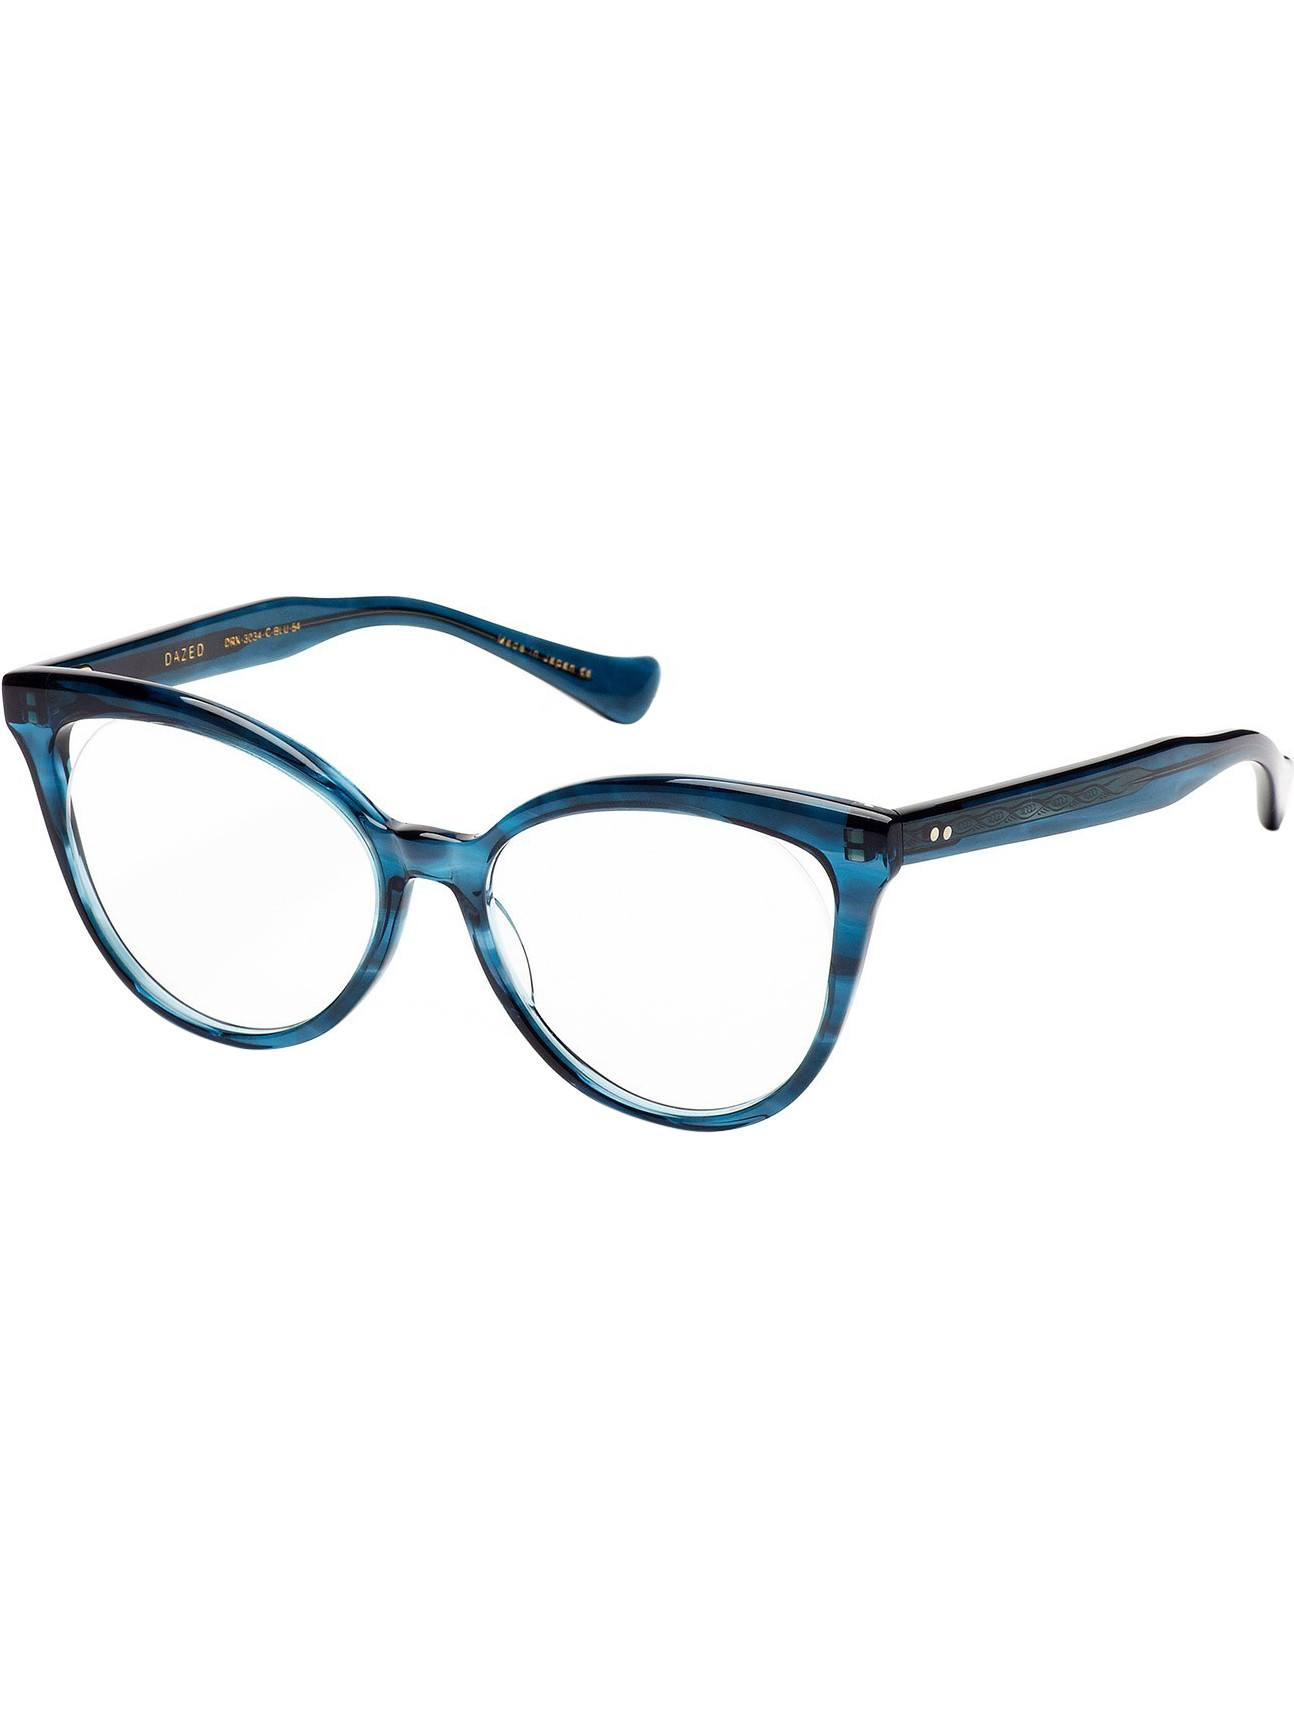 Optical Frame - Dita Dazed-DRX-3034-C Glasses